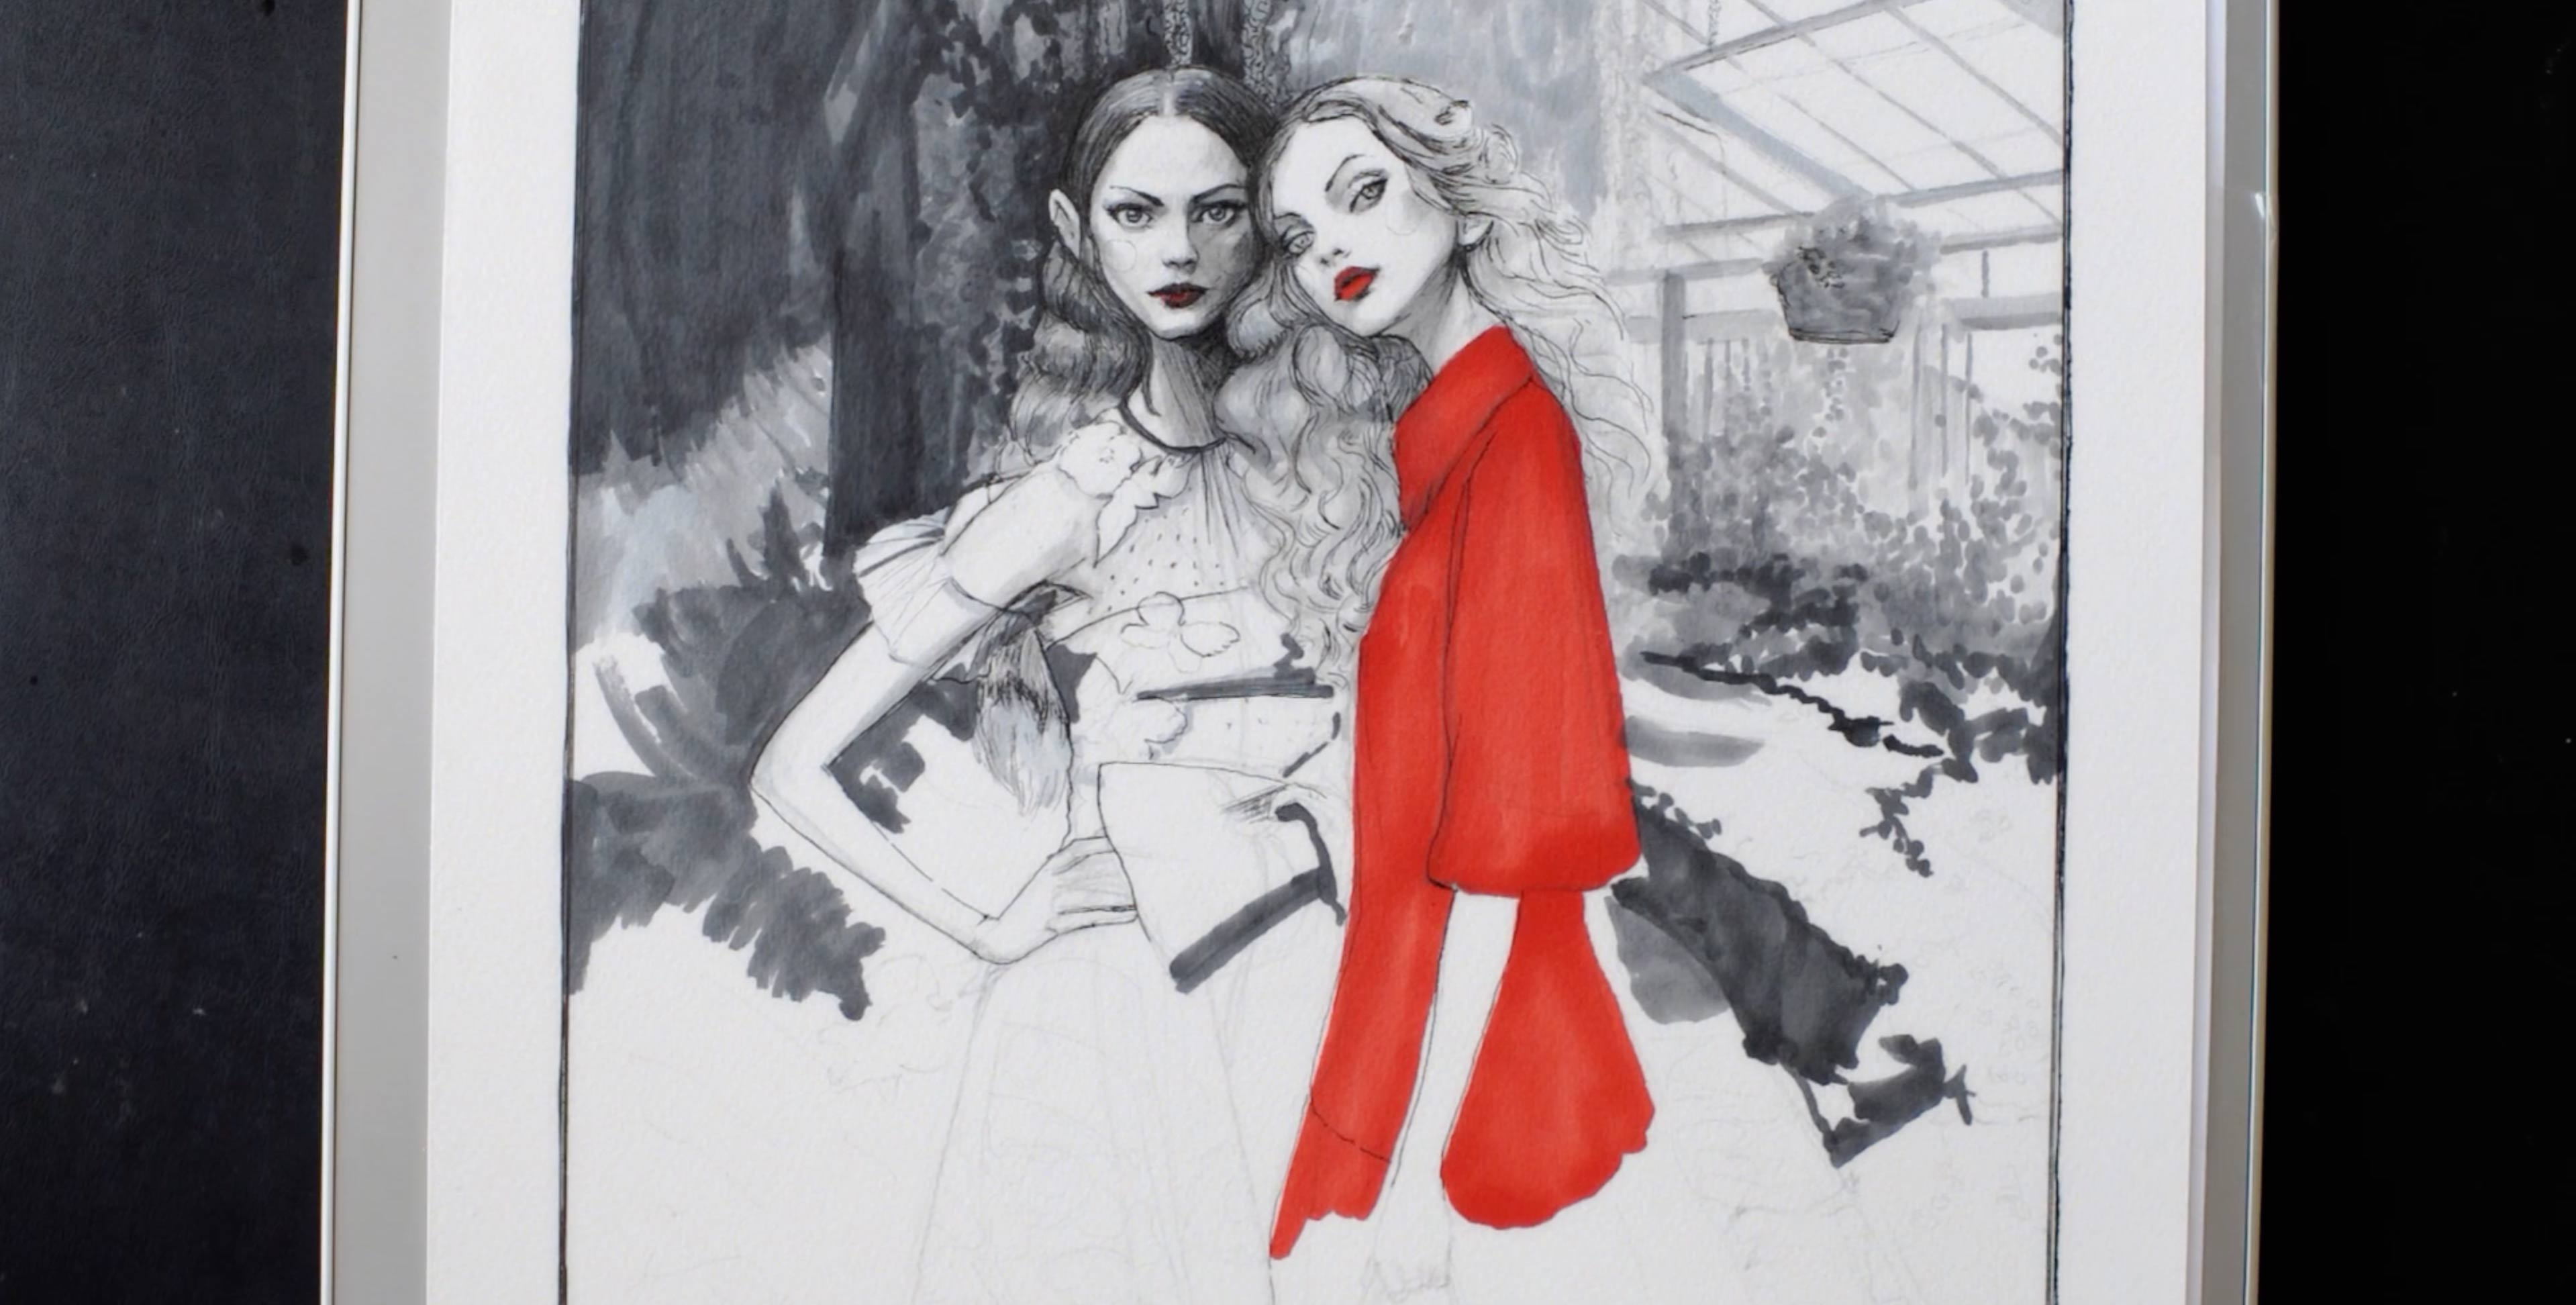 RedValentino Spring 2020 Danny Roberts Fashion Illlustration Timelapse Video